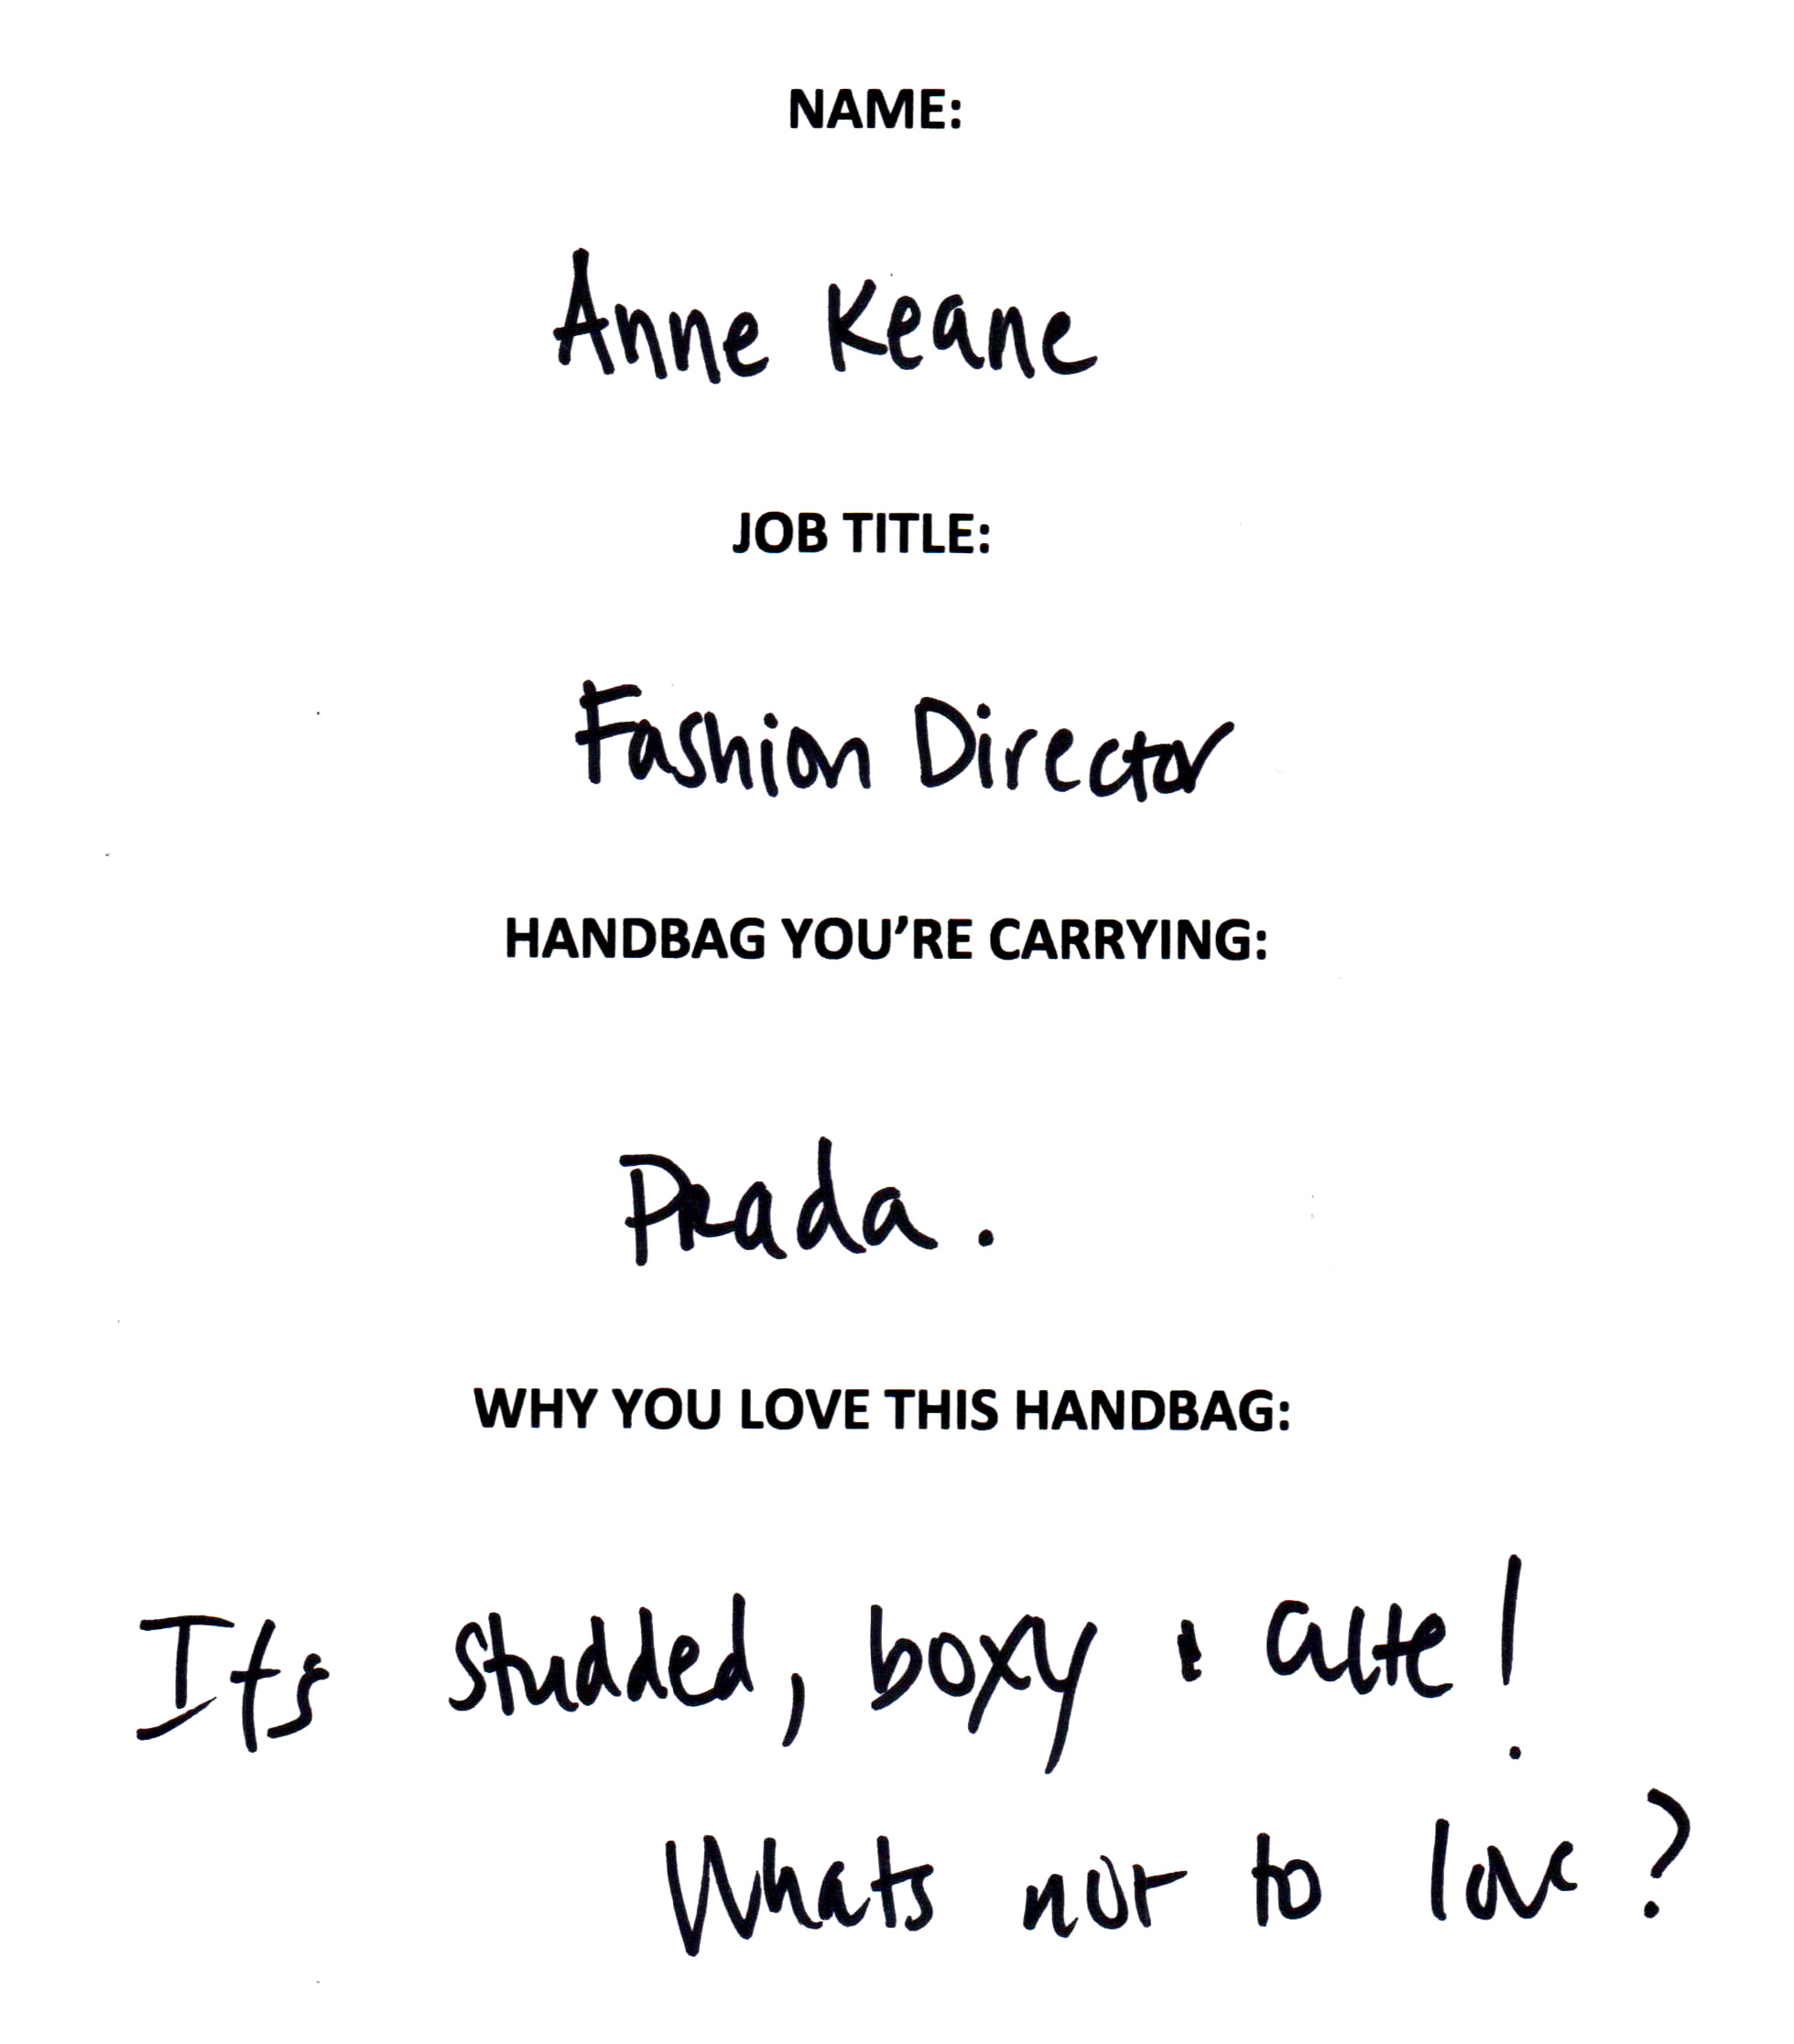 Anne Keane Prada Answers